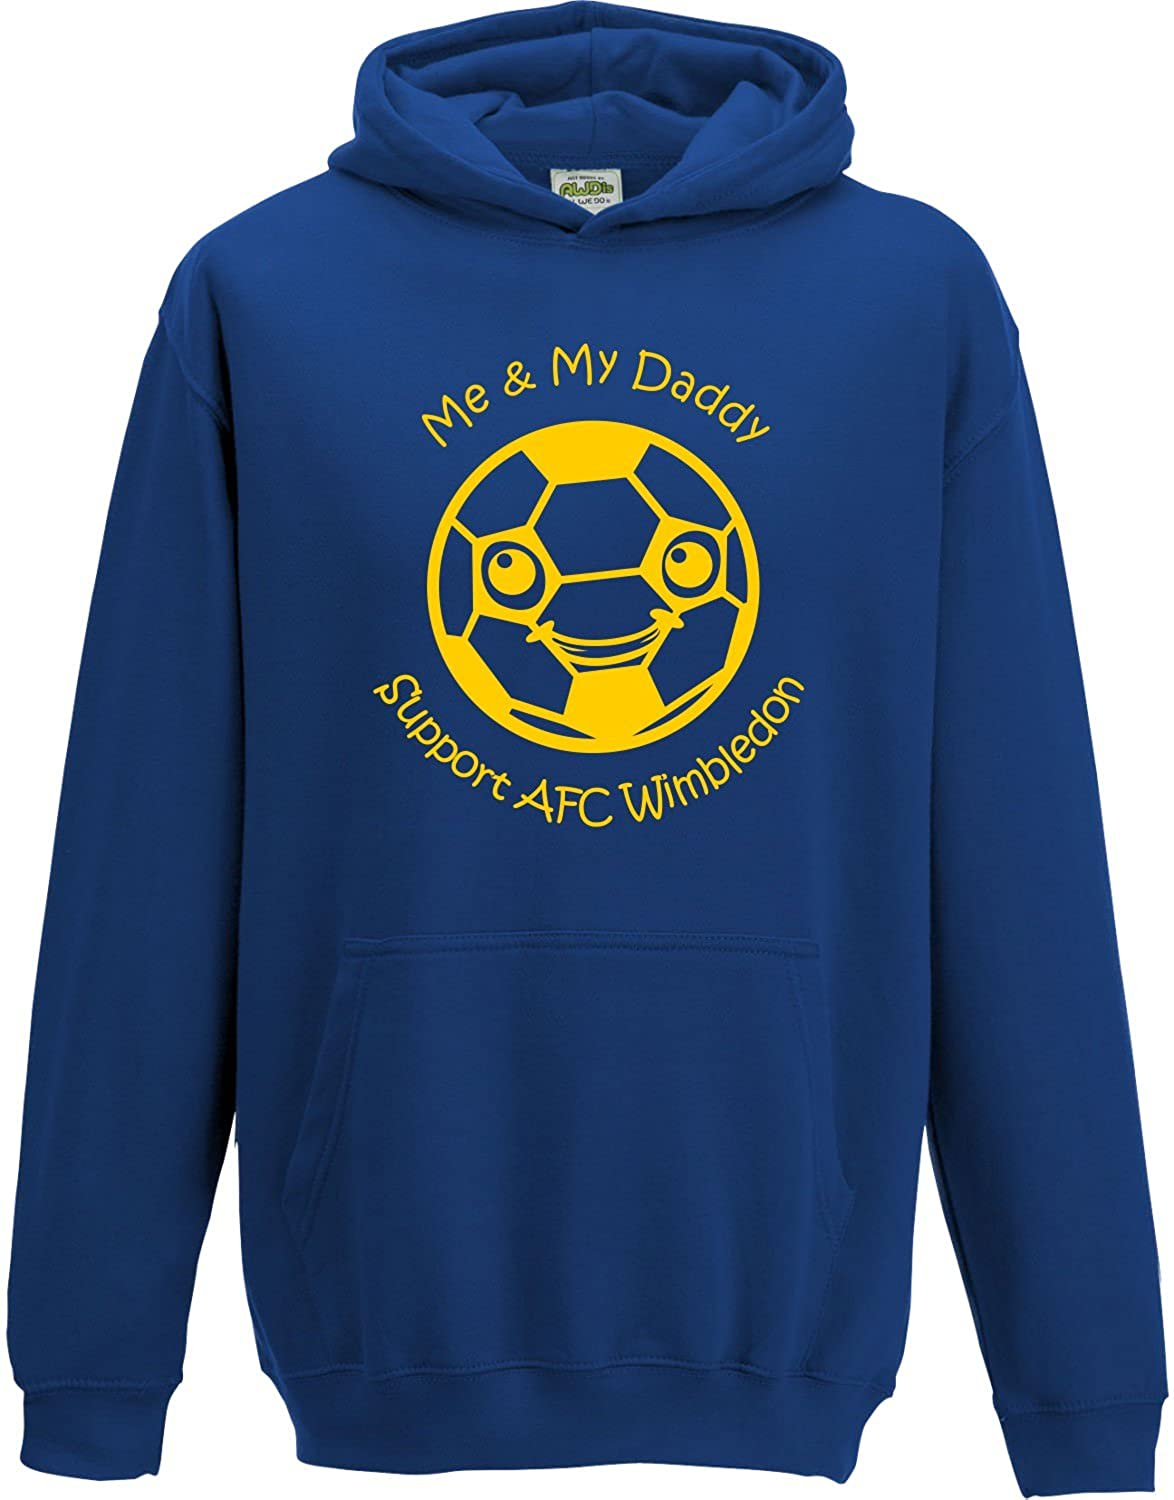 Hat-Trick Designs Afc Wimbledon Football Baby/Kids/Childrens Hoodie Sweatshirt-Royal Blue-Me & My-Unisex Gift